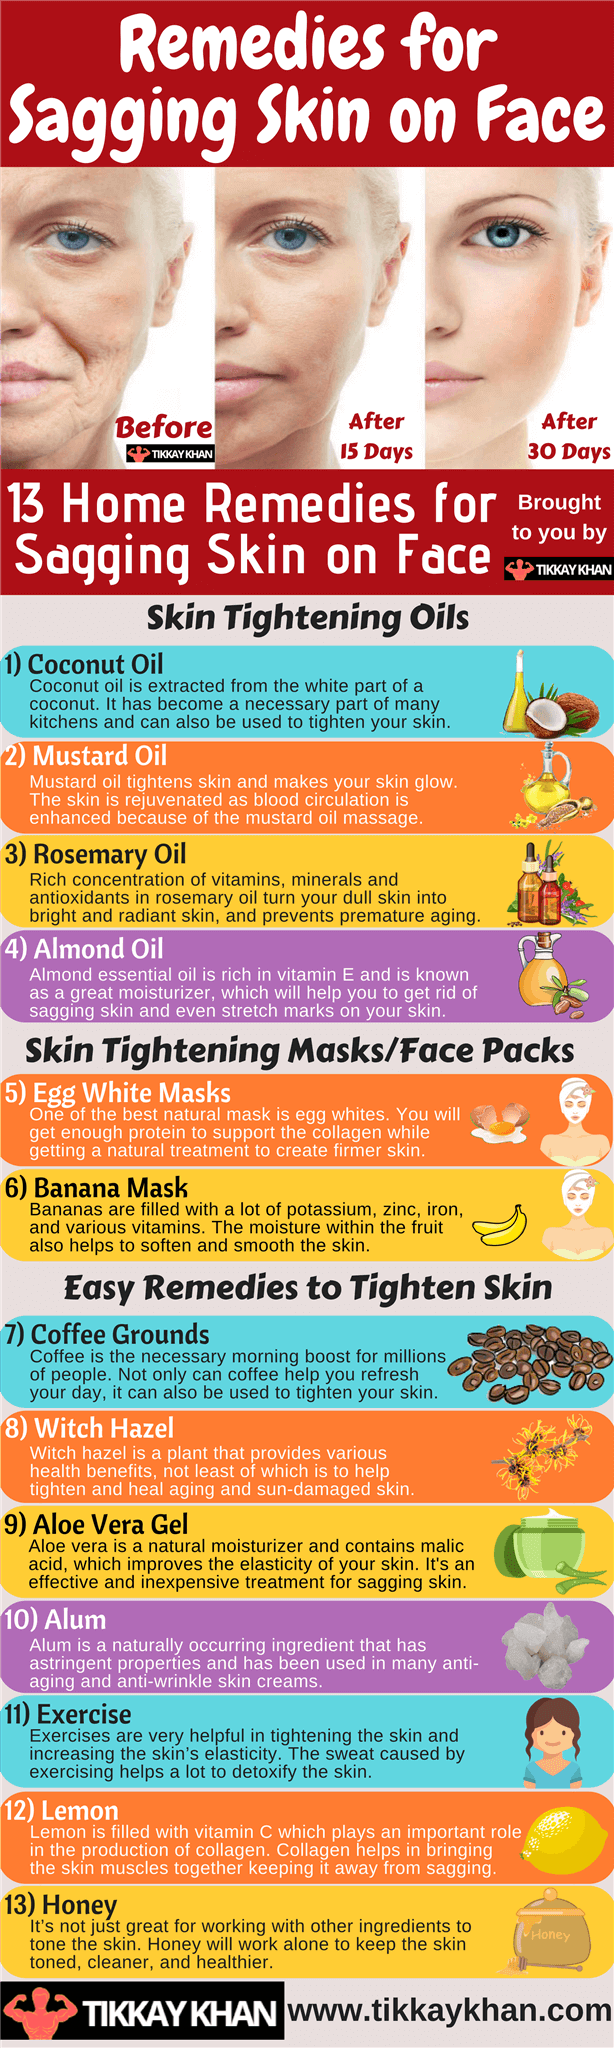 Remedies for Sagging Skin on Face Infographic